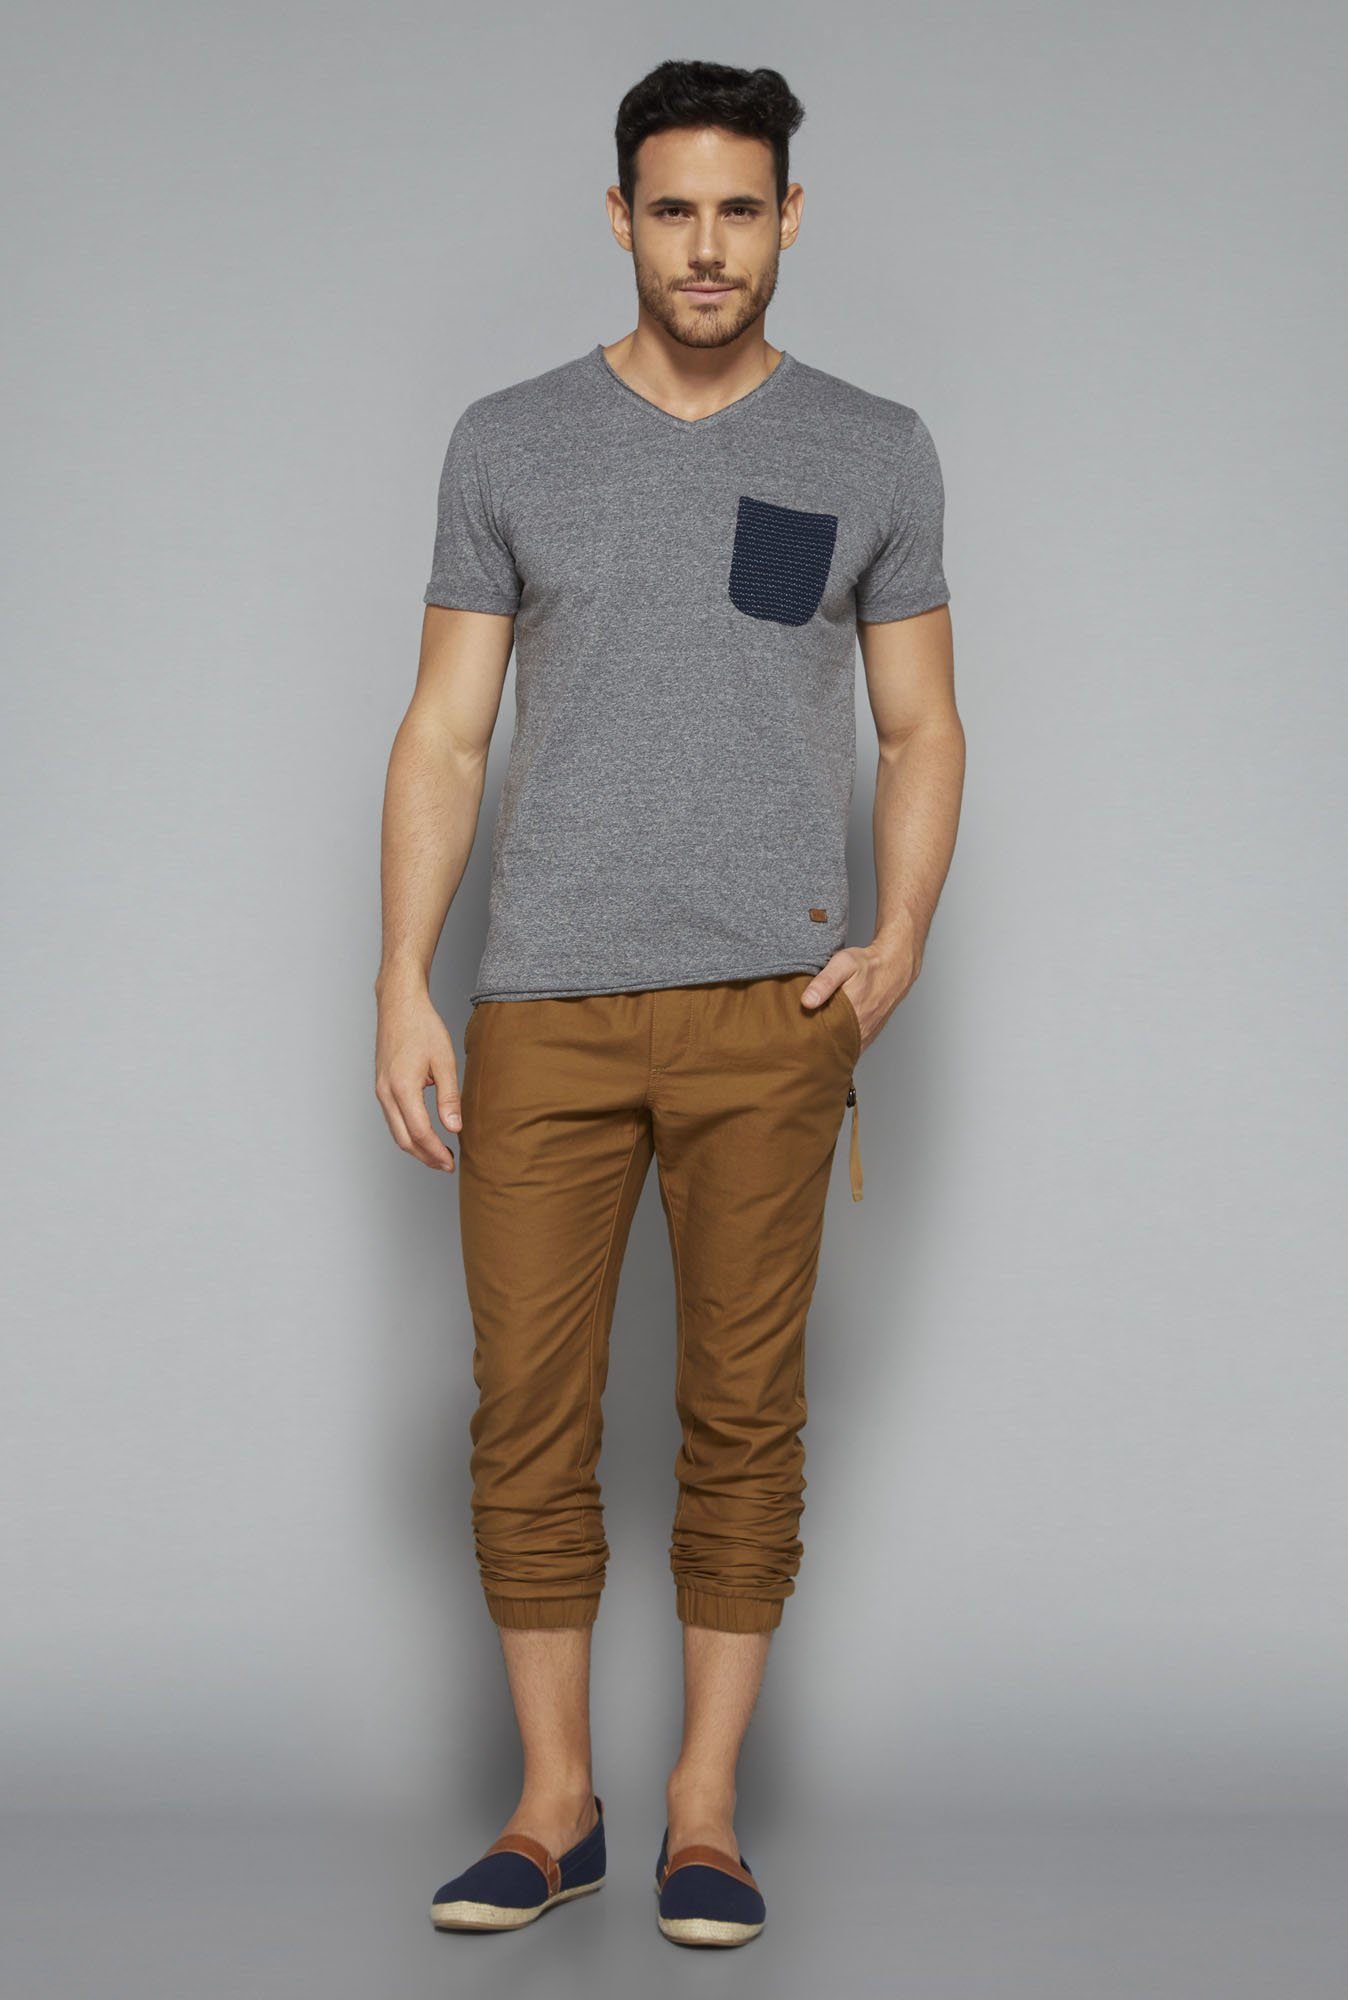 ETA by Westside Grey Slim Fit T Shirt